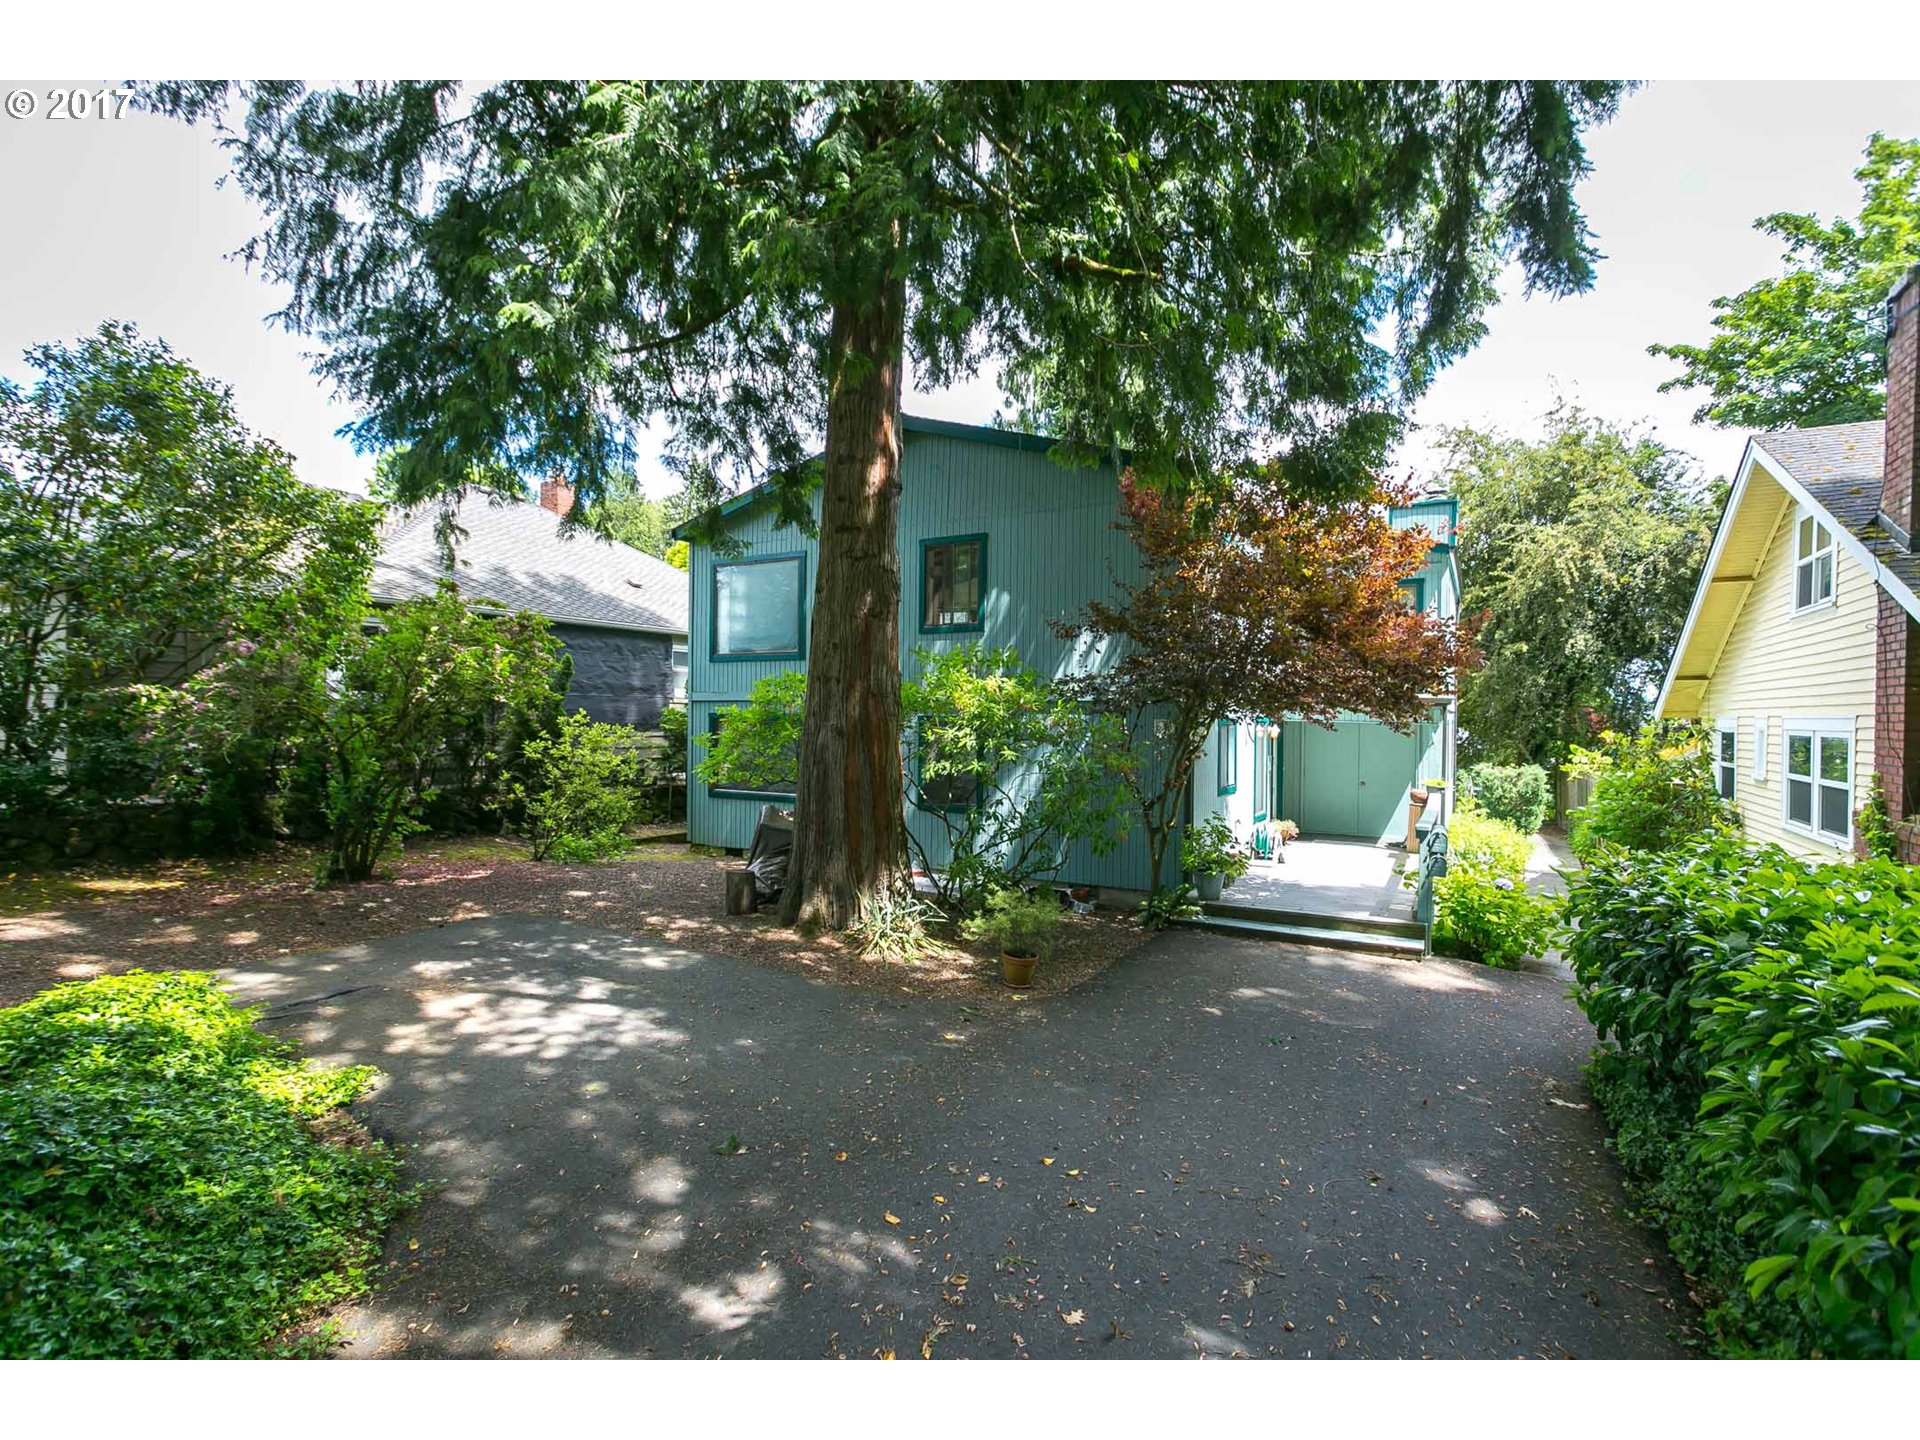 Photo for 623 6TH ST, Lake Oswego, OR 97034 (MLS # 17569229)